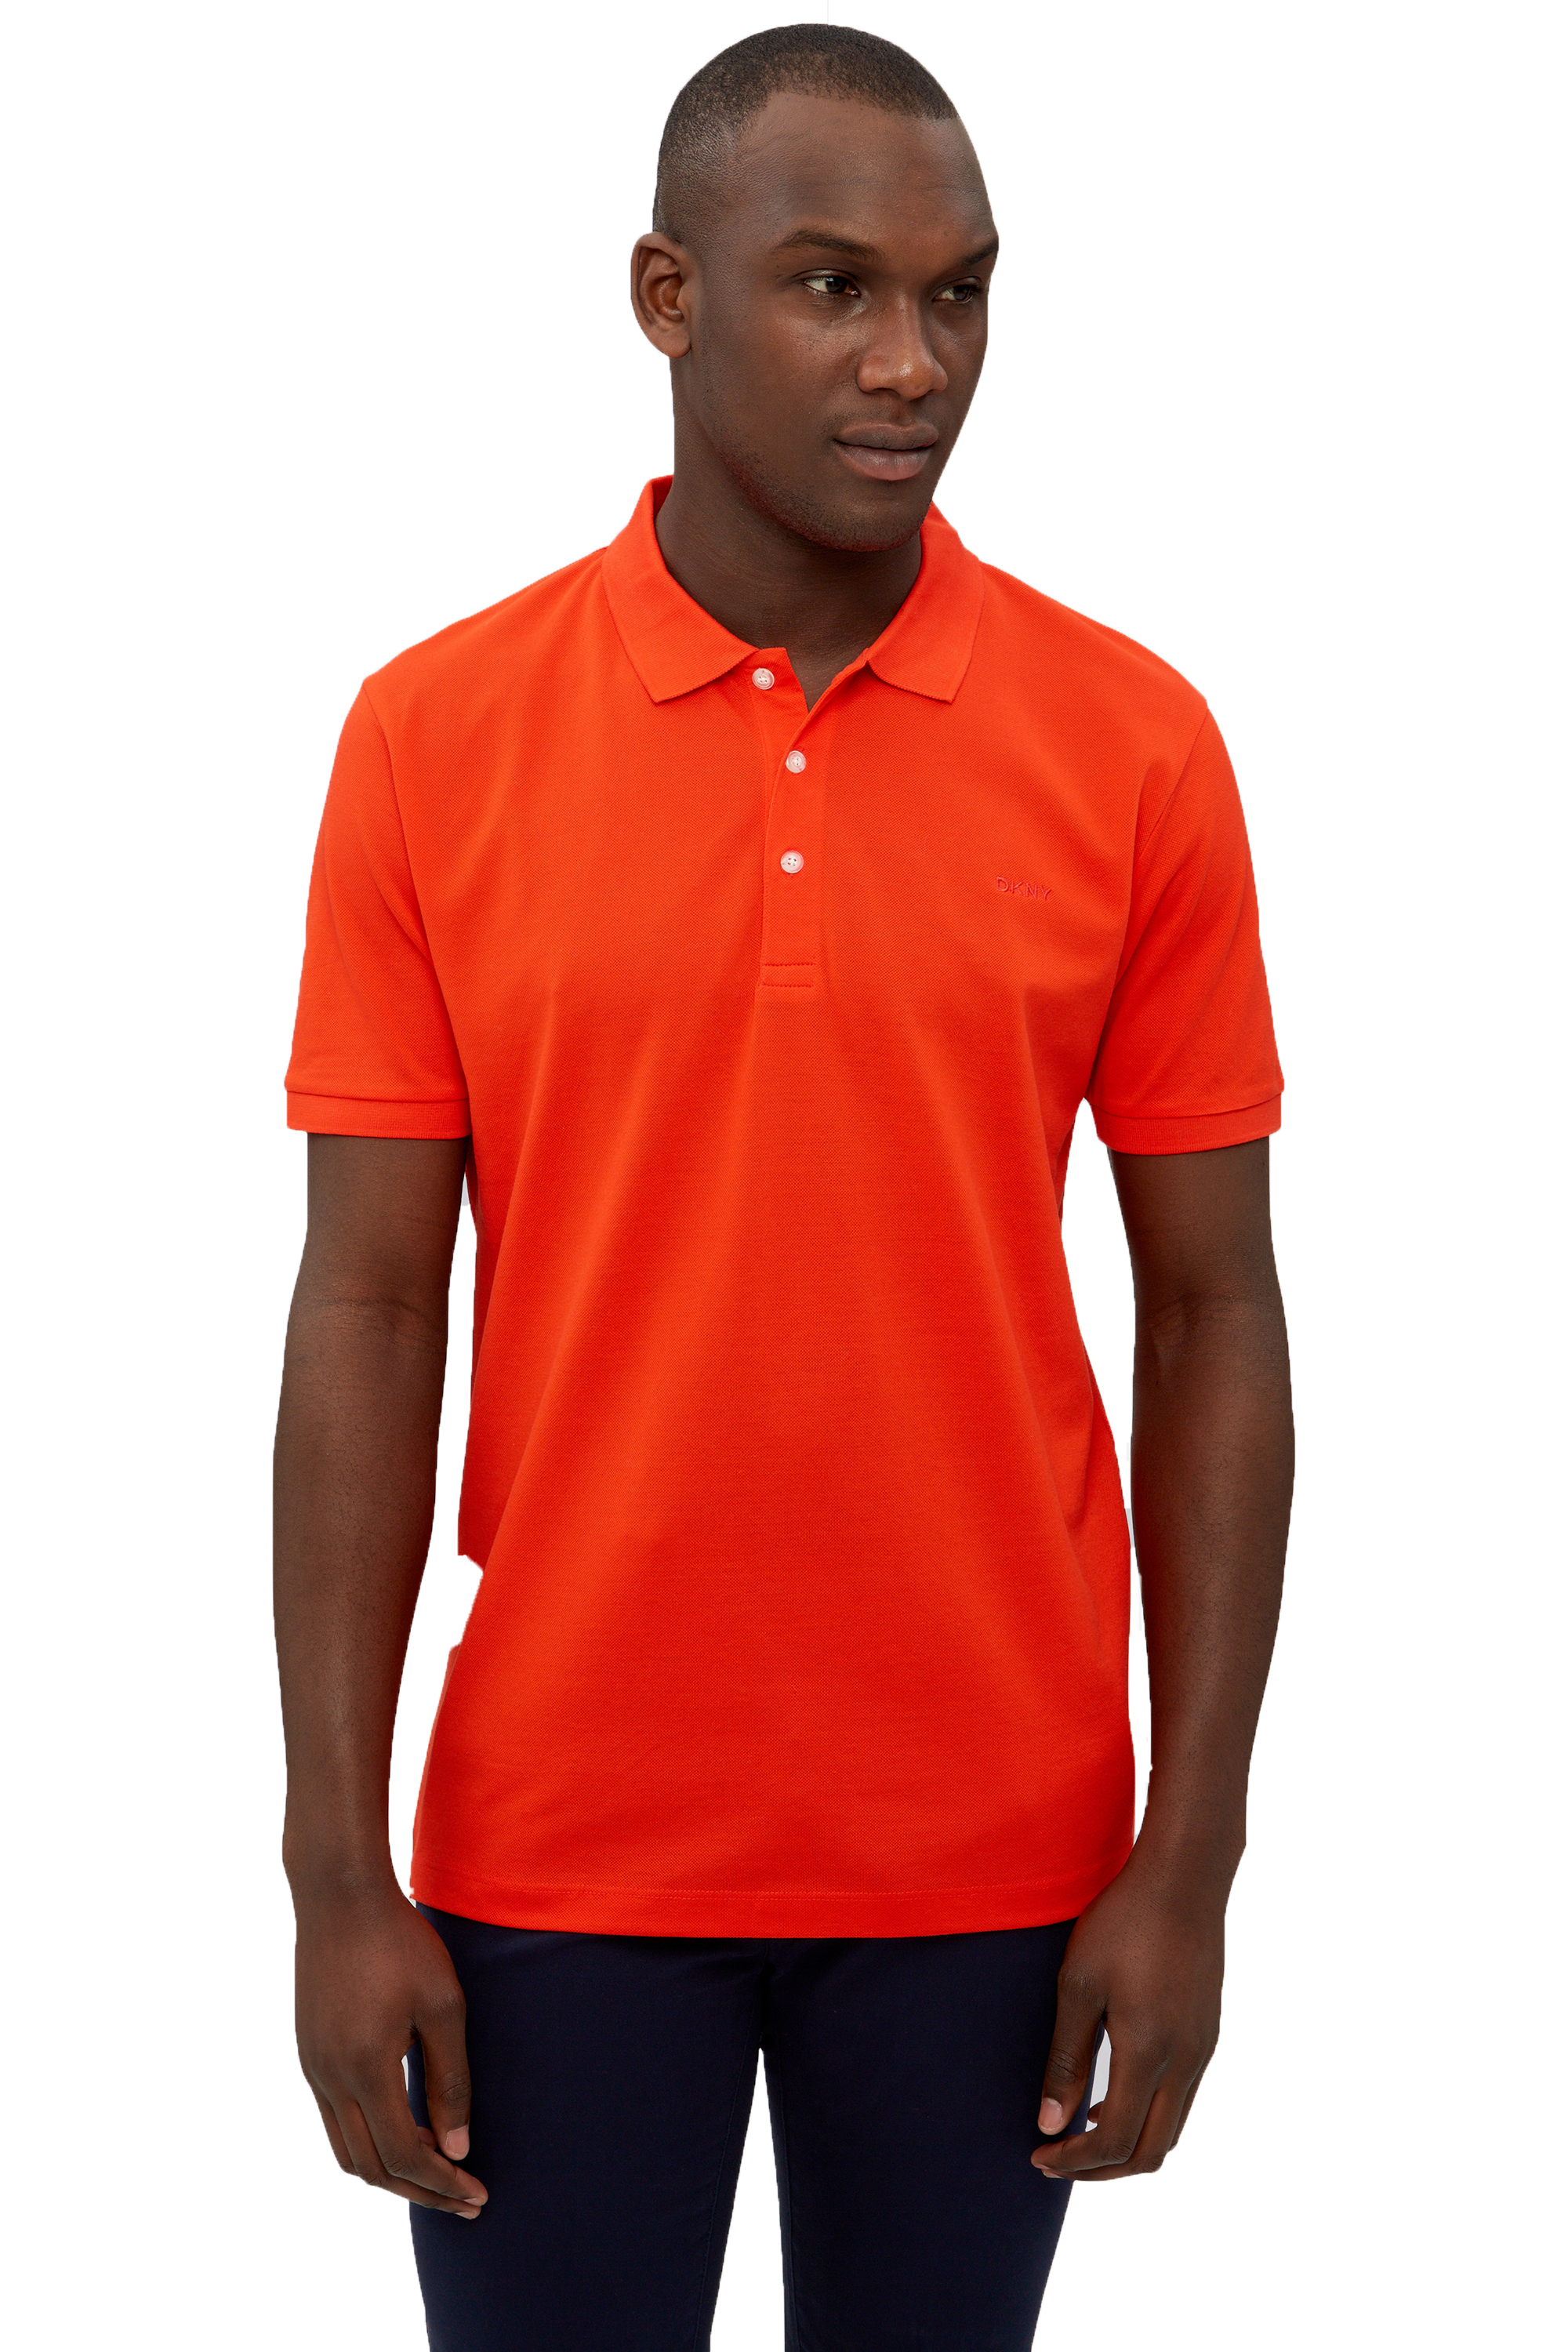 Dkny mens polo shirt chest logo casual cotton tee top for Cotton polo shirts with logo